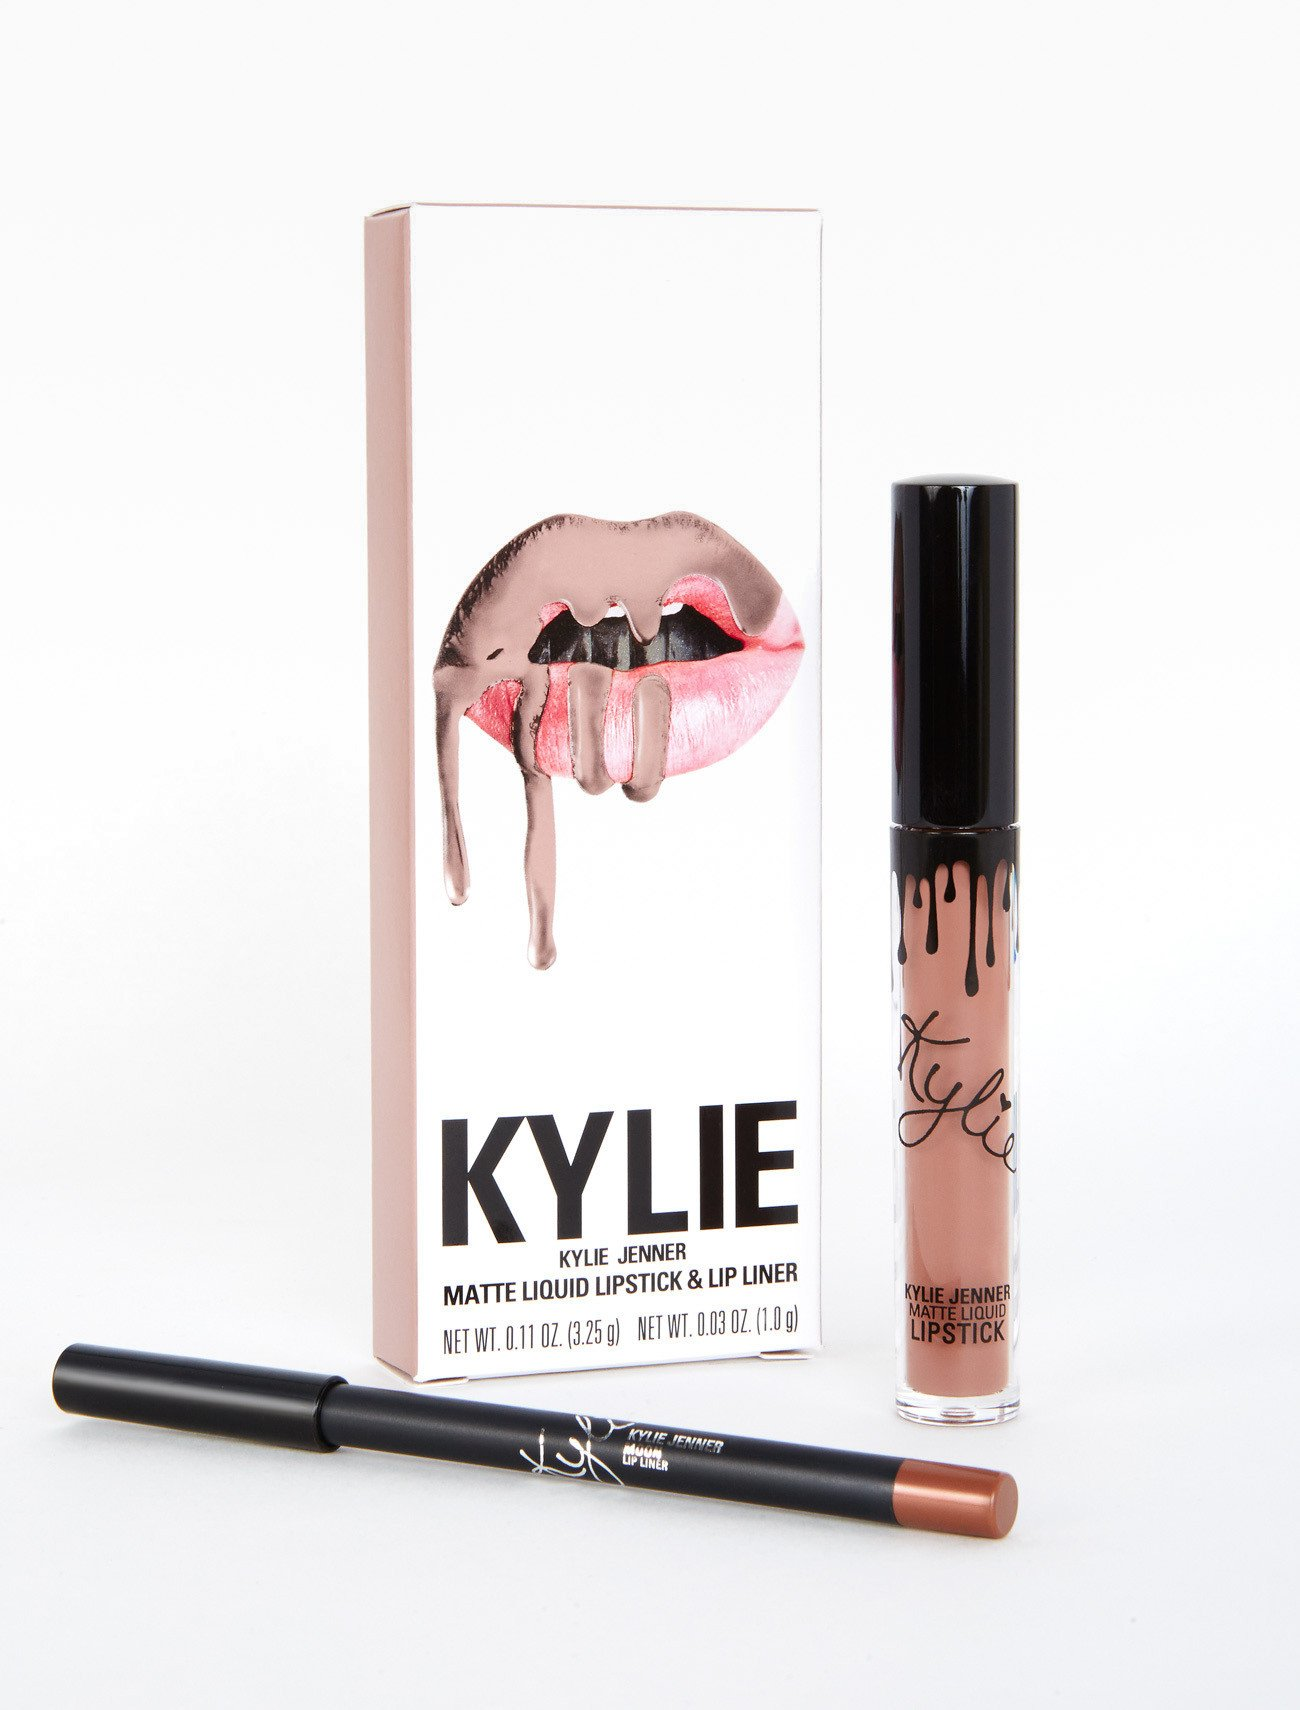 Kylie Cosmetics Love Bite Liquid Lipstick Dupes: Kylie Cosmetics Moon Liquid Lipstick Dupes